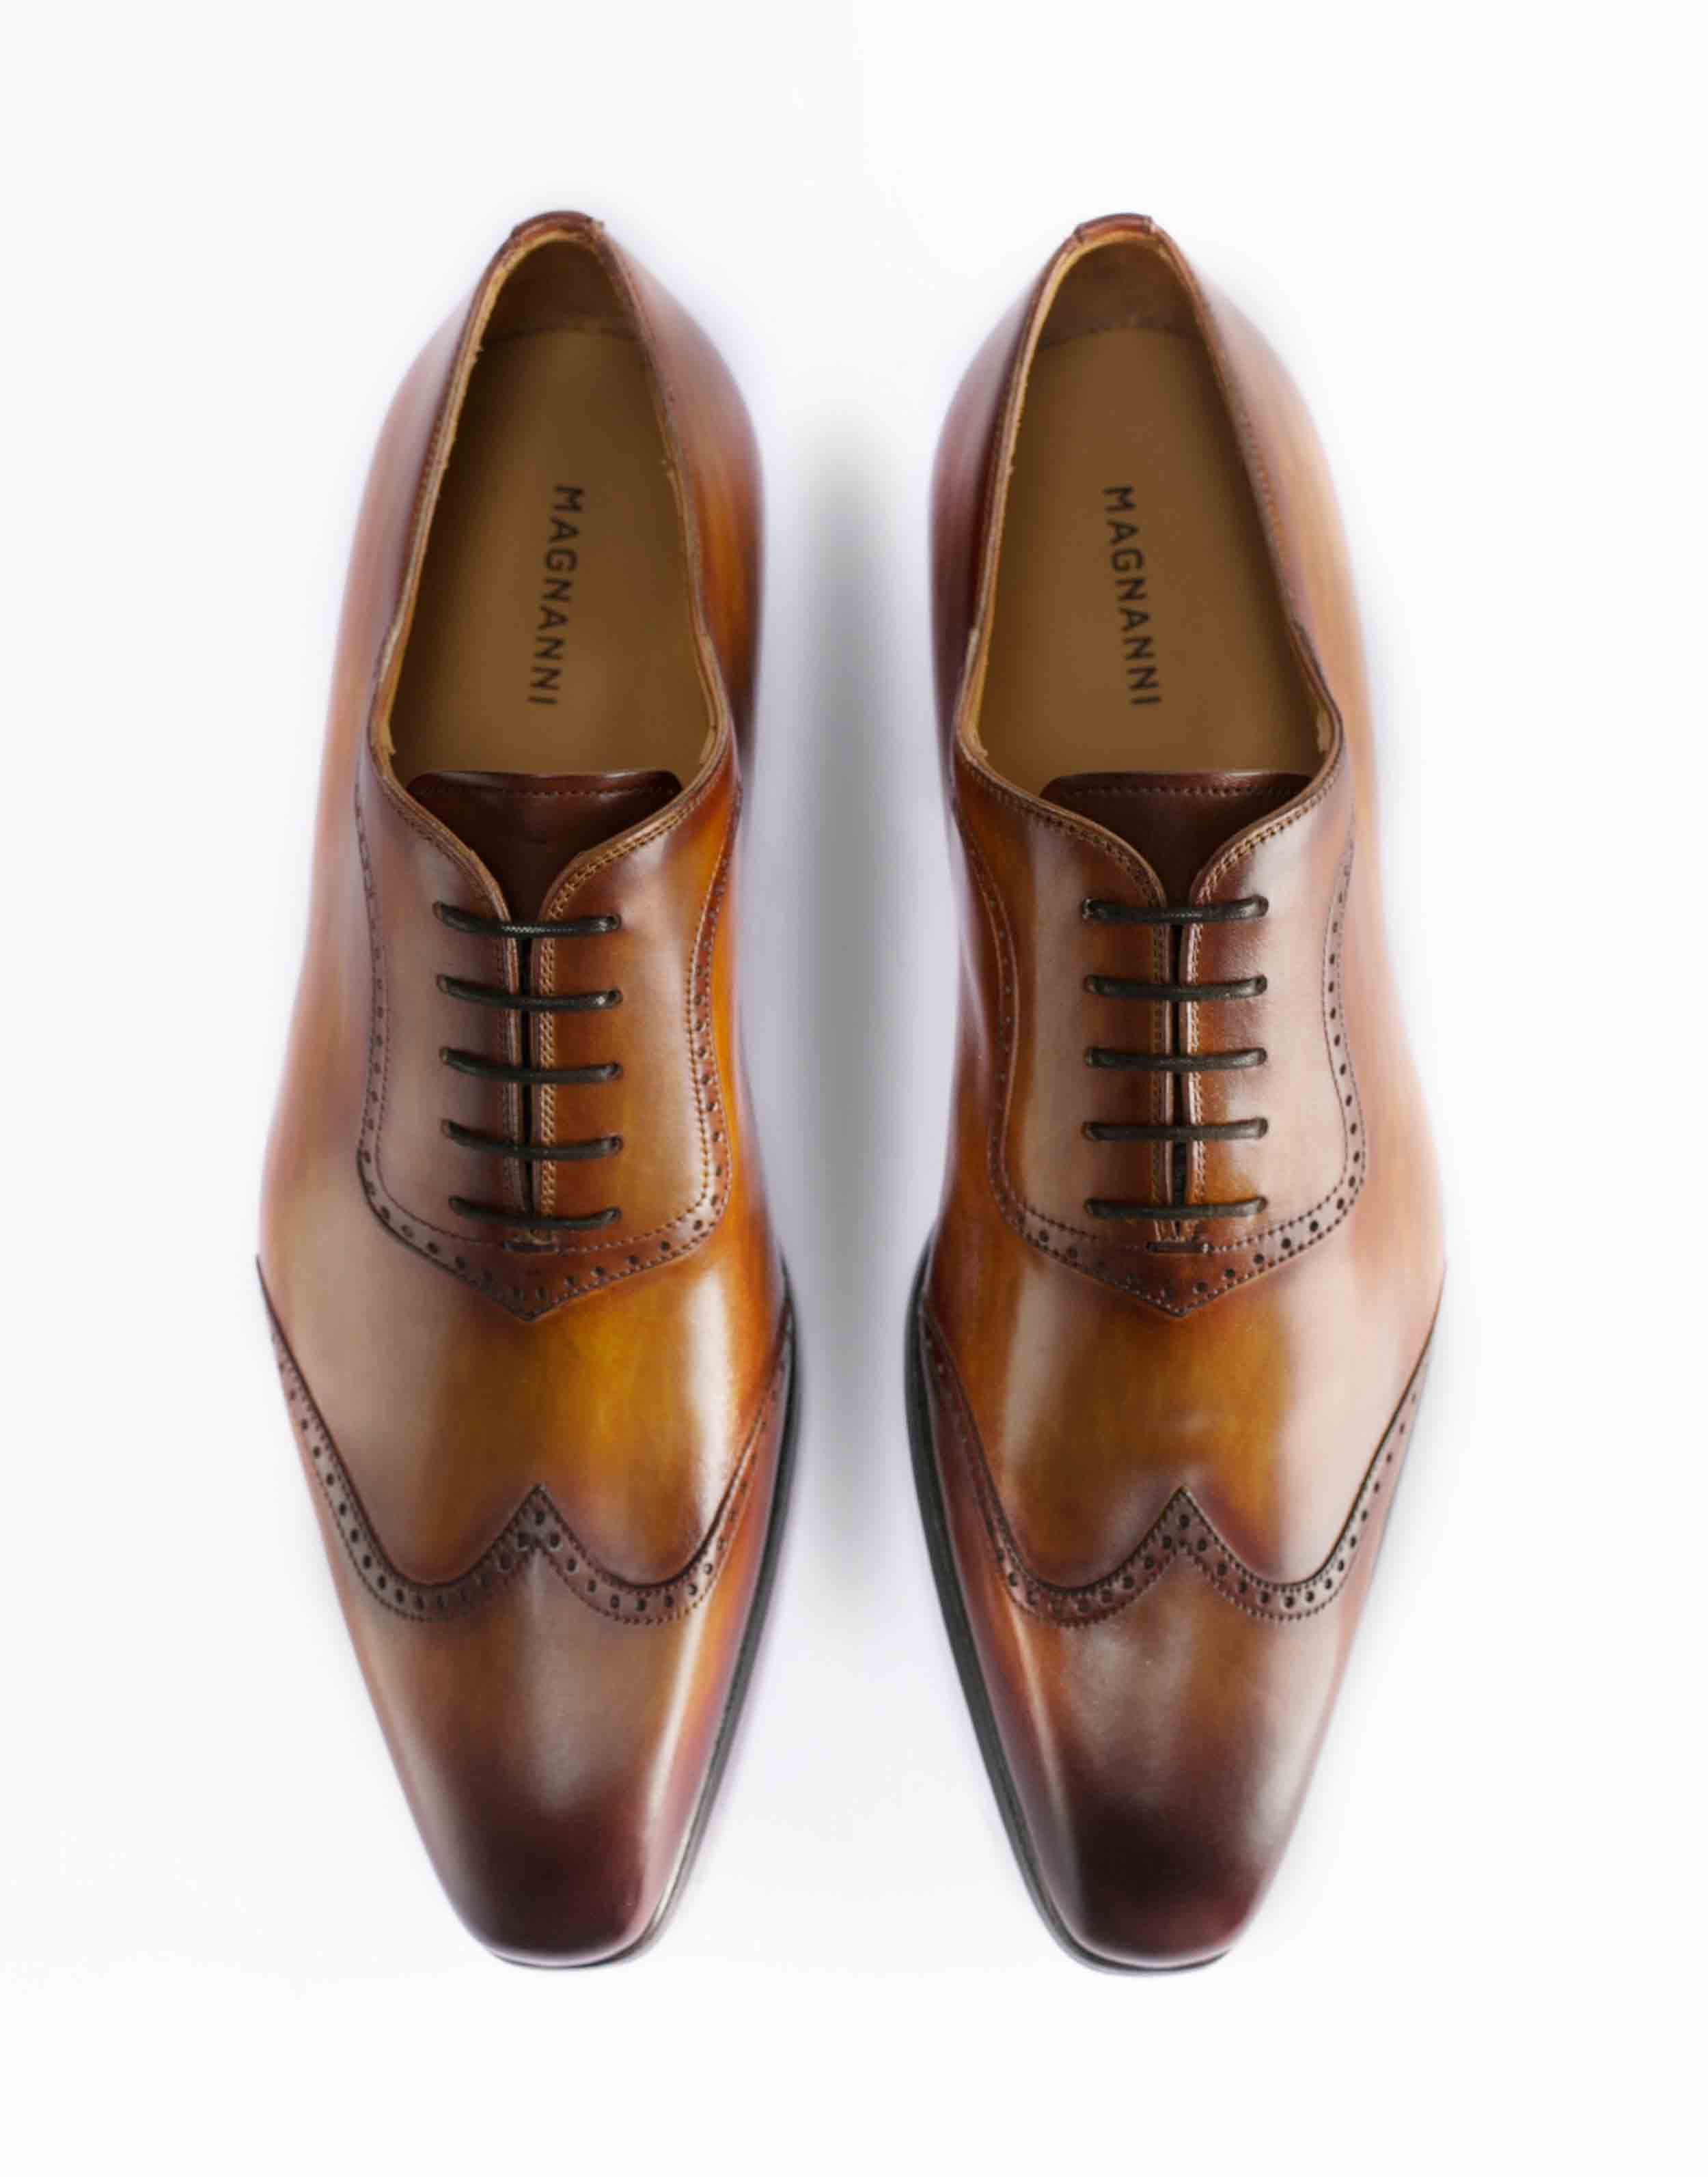 CUERO WINGTIP OXFORDS4